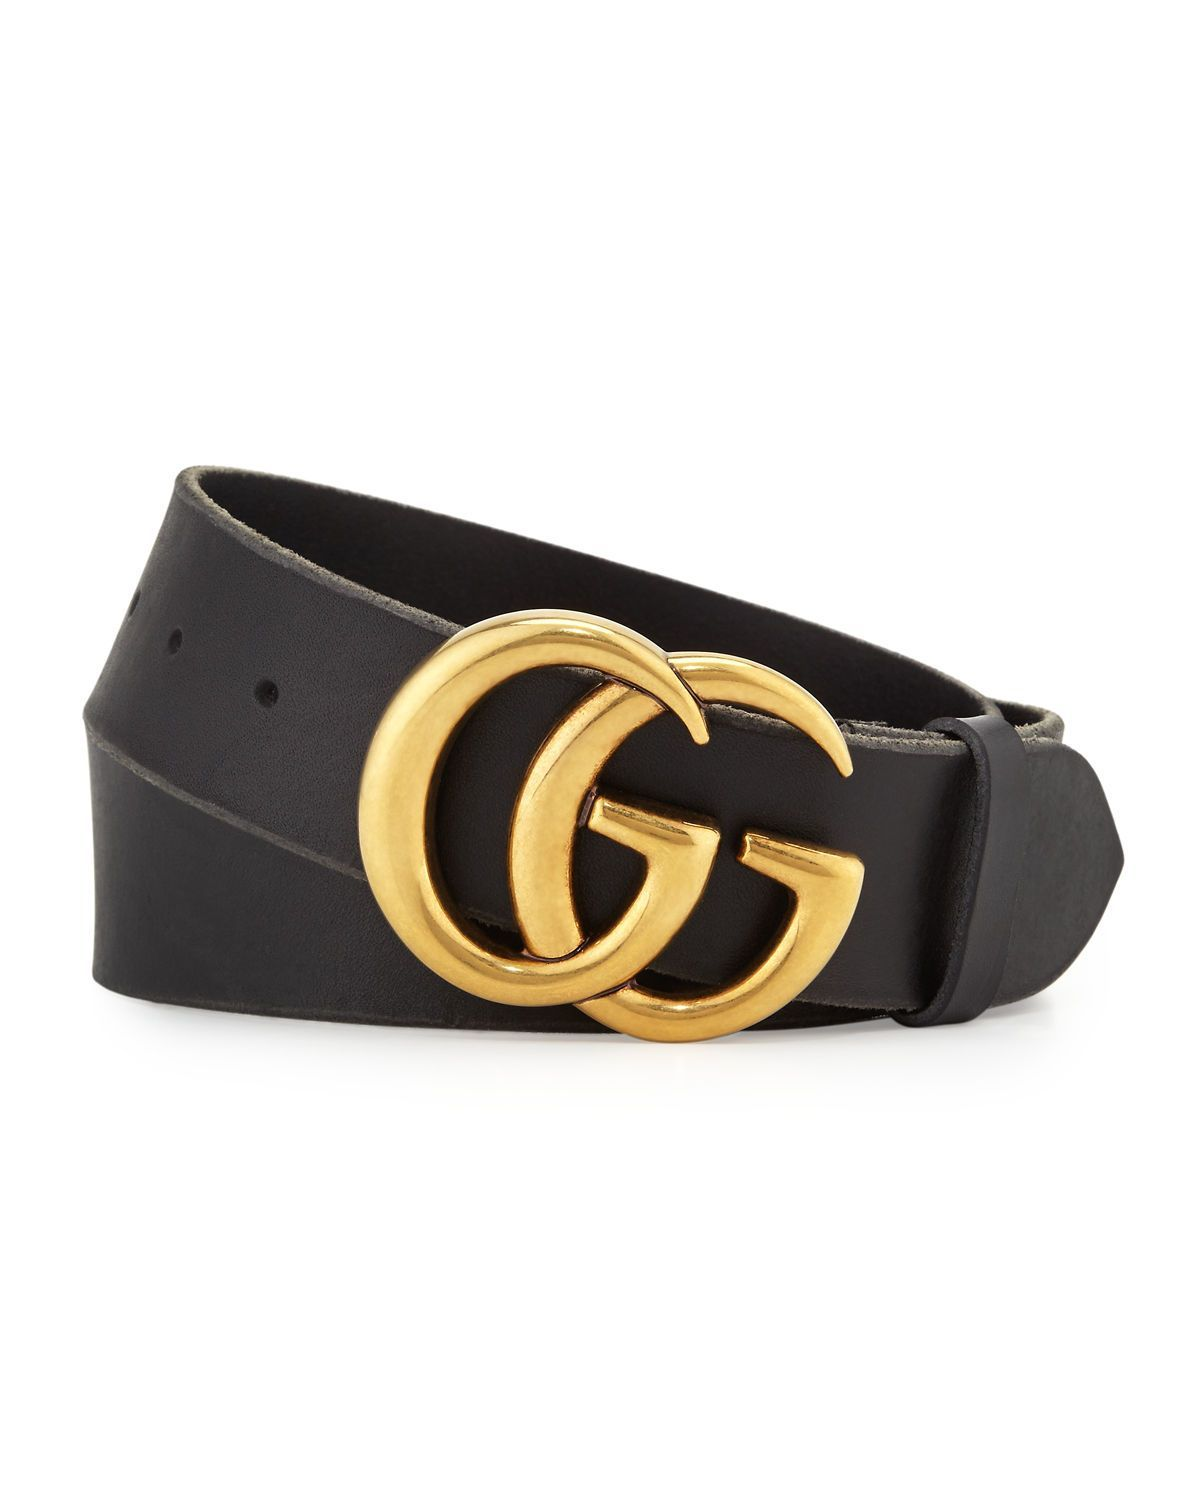 5cd068e8801b Men's Leather Belt with Double-G Buckle | Men's Fashion | Gucci men ...